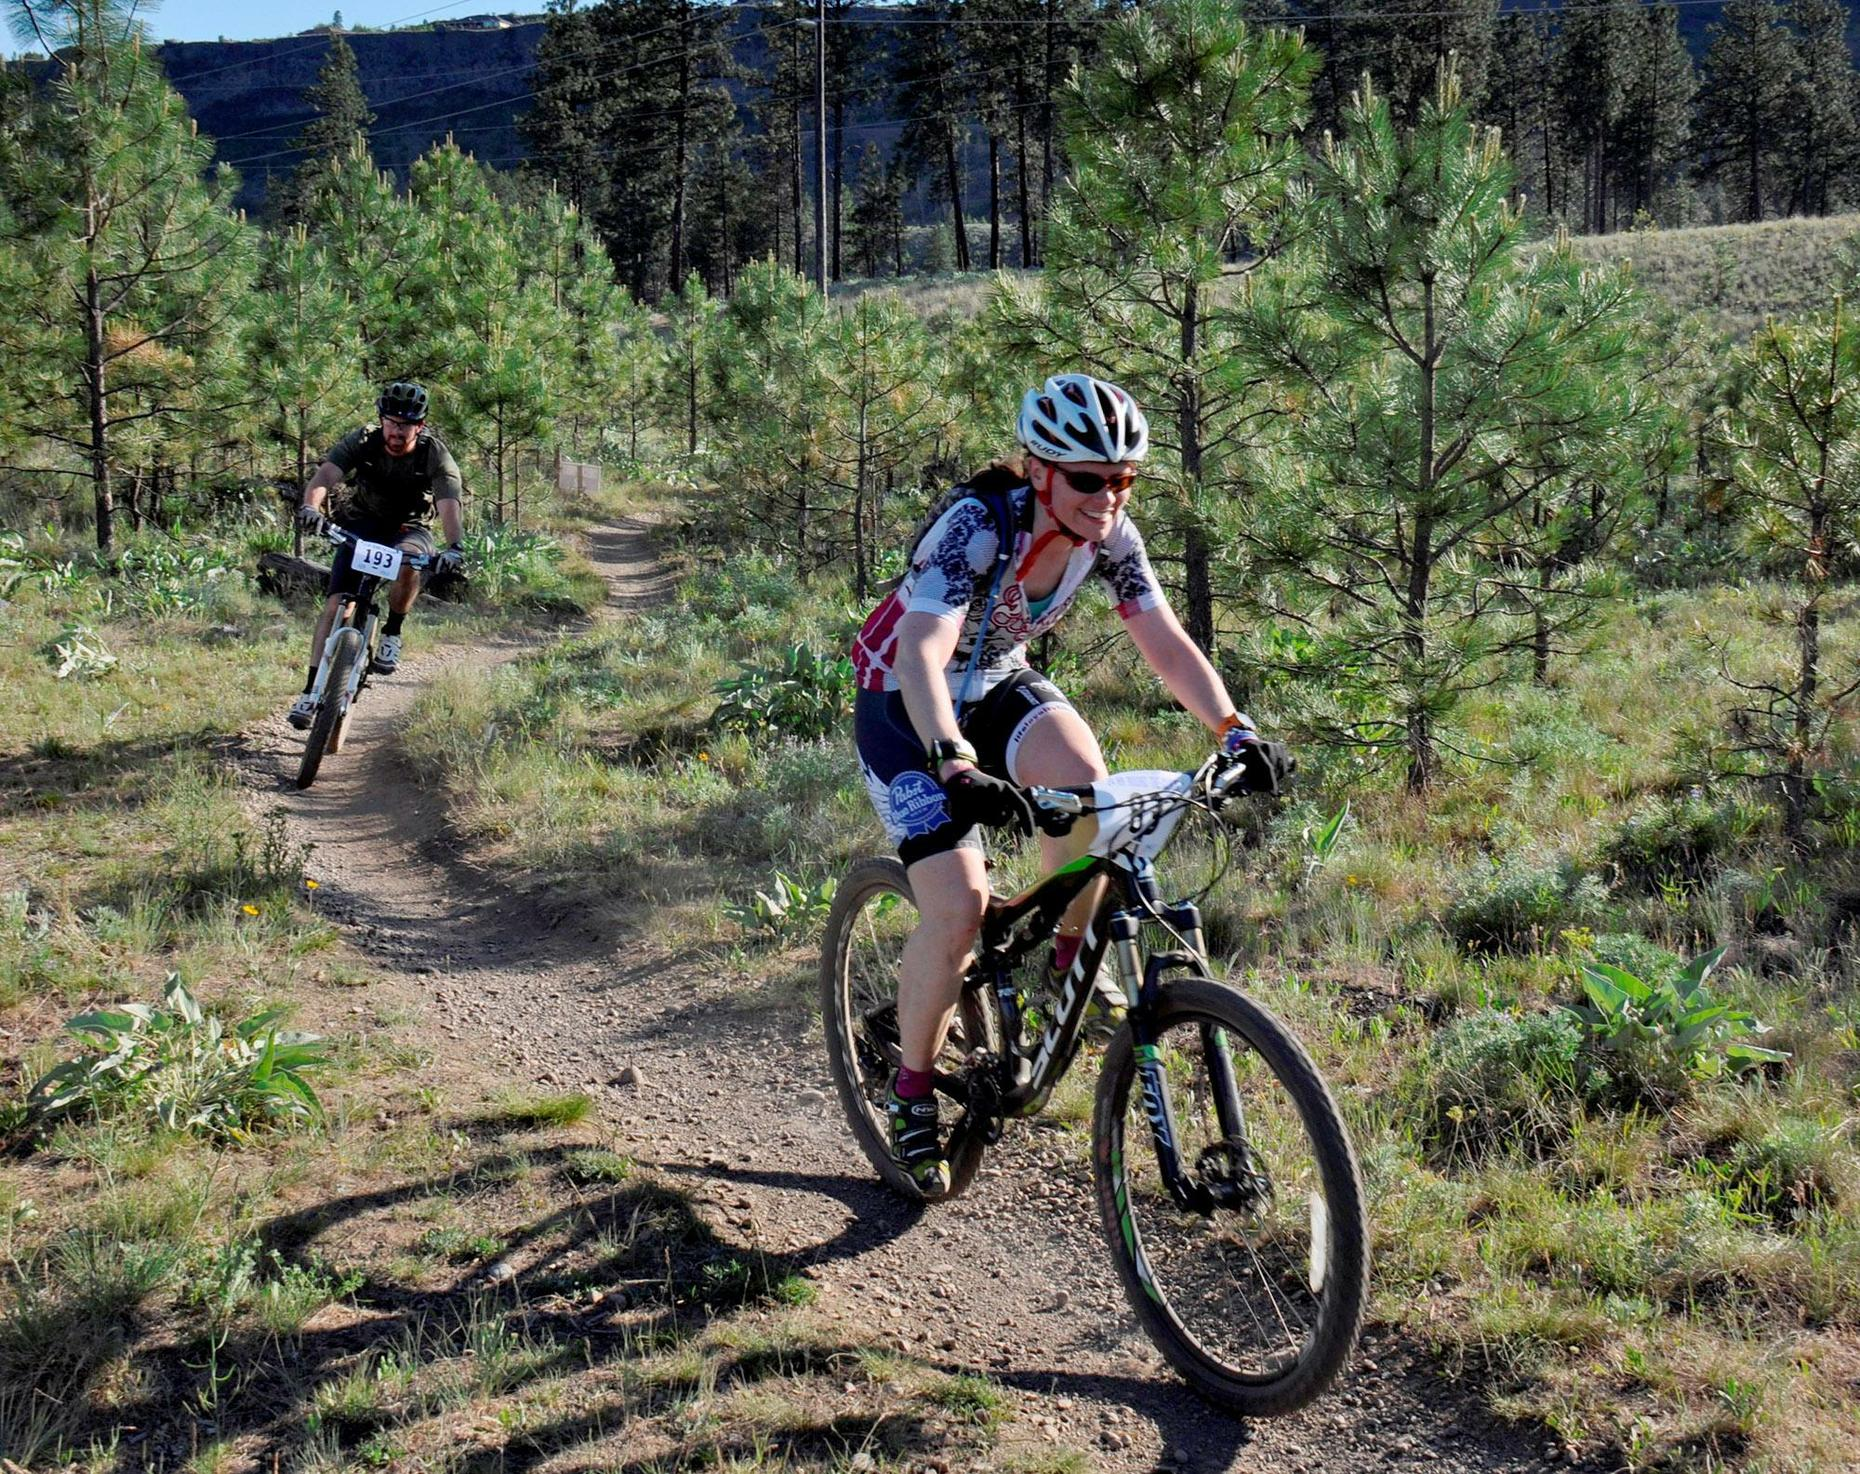 RIDERS CRUSH SOME SINGLE TRACK DURING THE 24 HOURS ROUND THE CLOCK MOUNTAIN BIKE RACE ON MAY 23, 2015, AT RIVERSIDE STATE PARK. (PHOTO COURTESY OF RICH LANDERS RICHL@SPOKESMAN.COM)